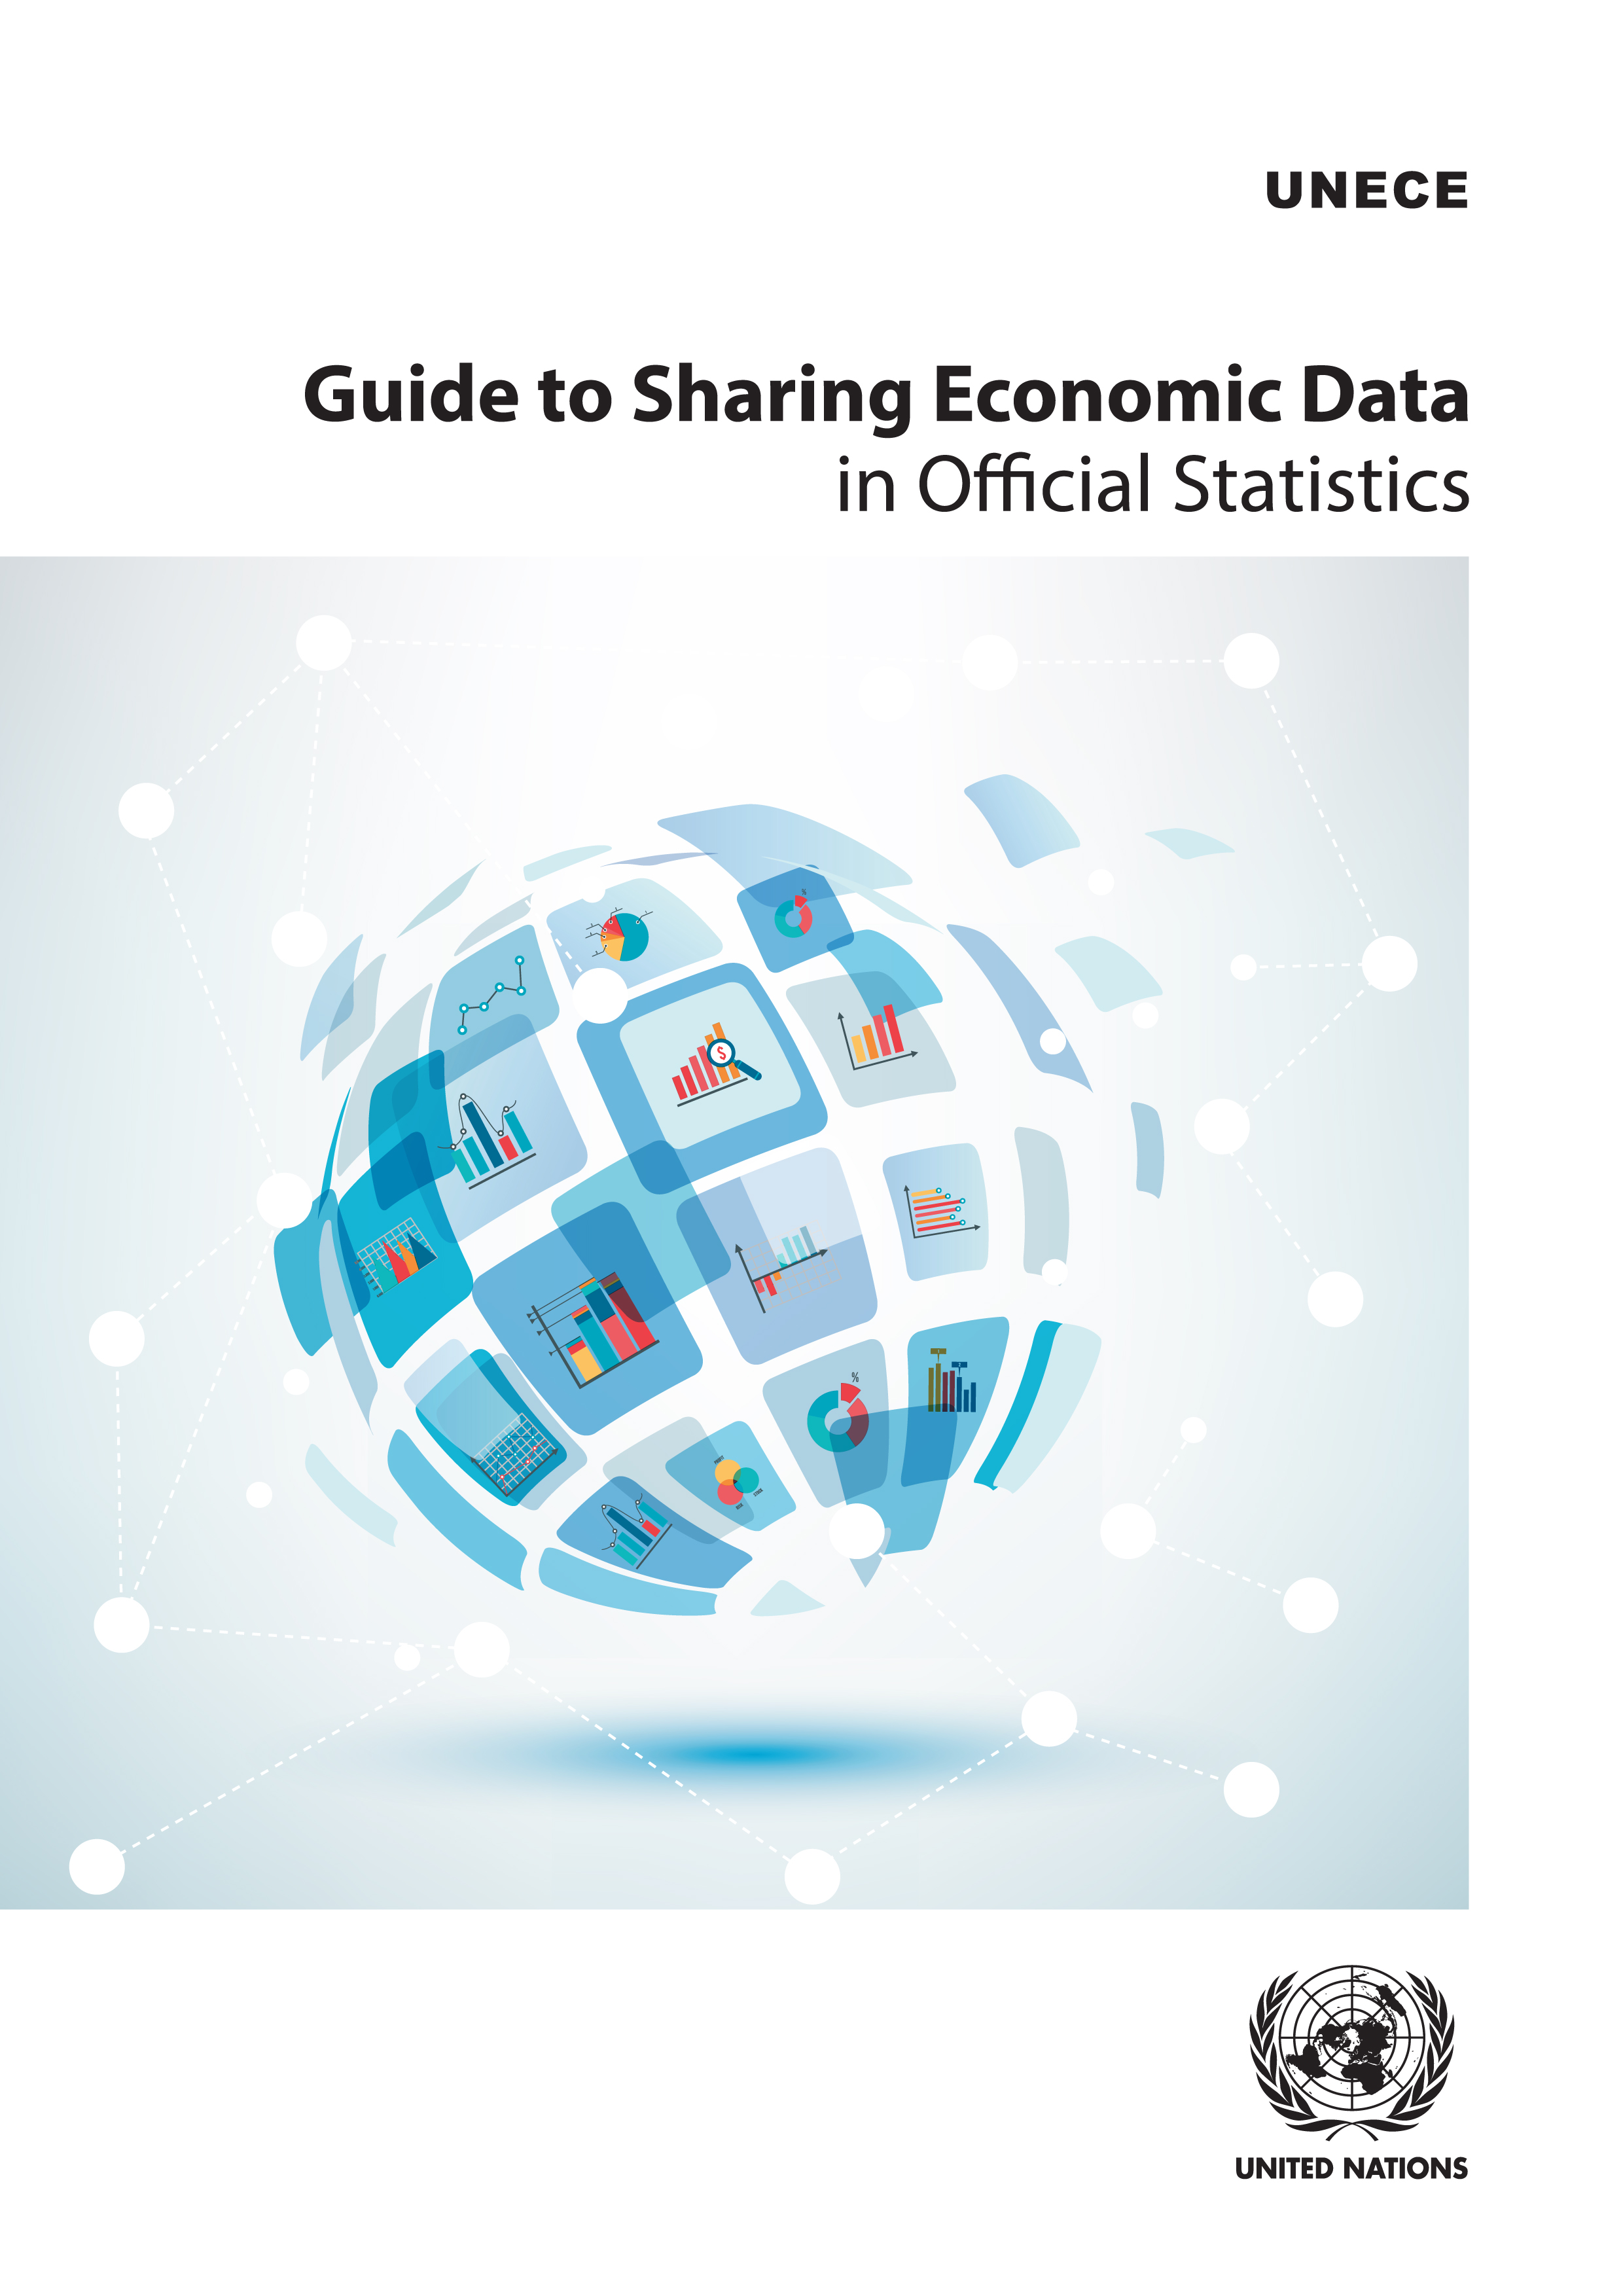 GUIDE TO SHARING ECONOMIC DATA